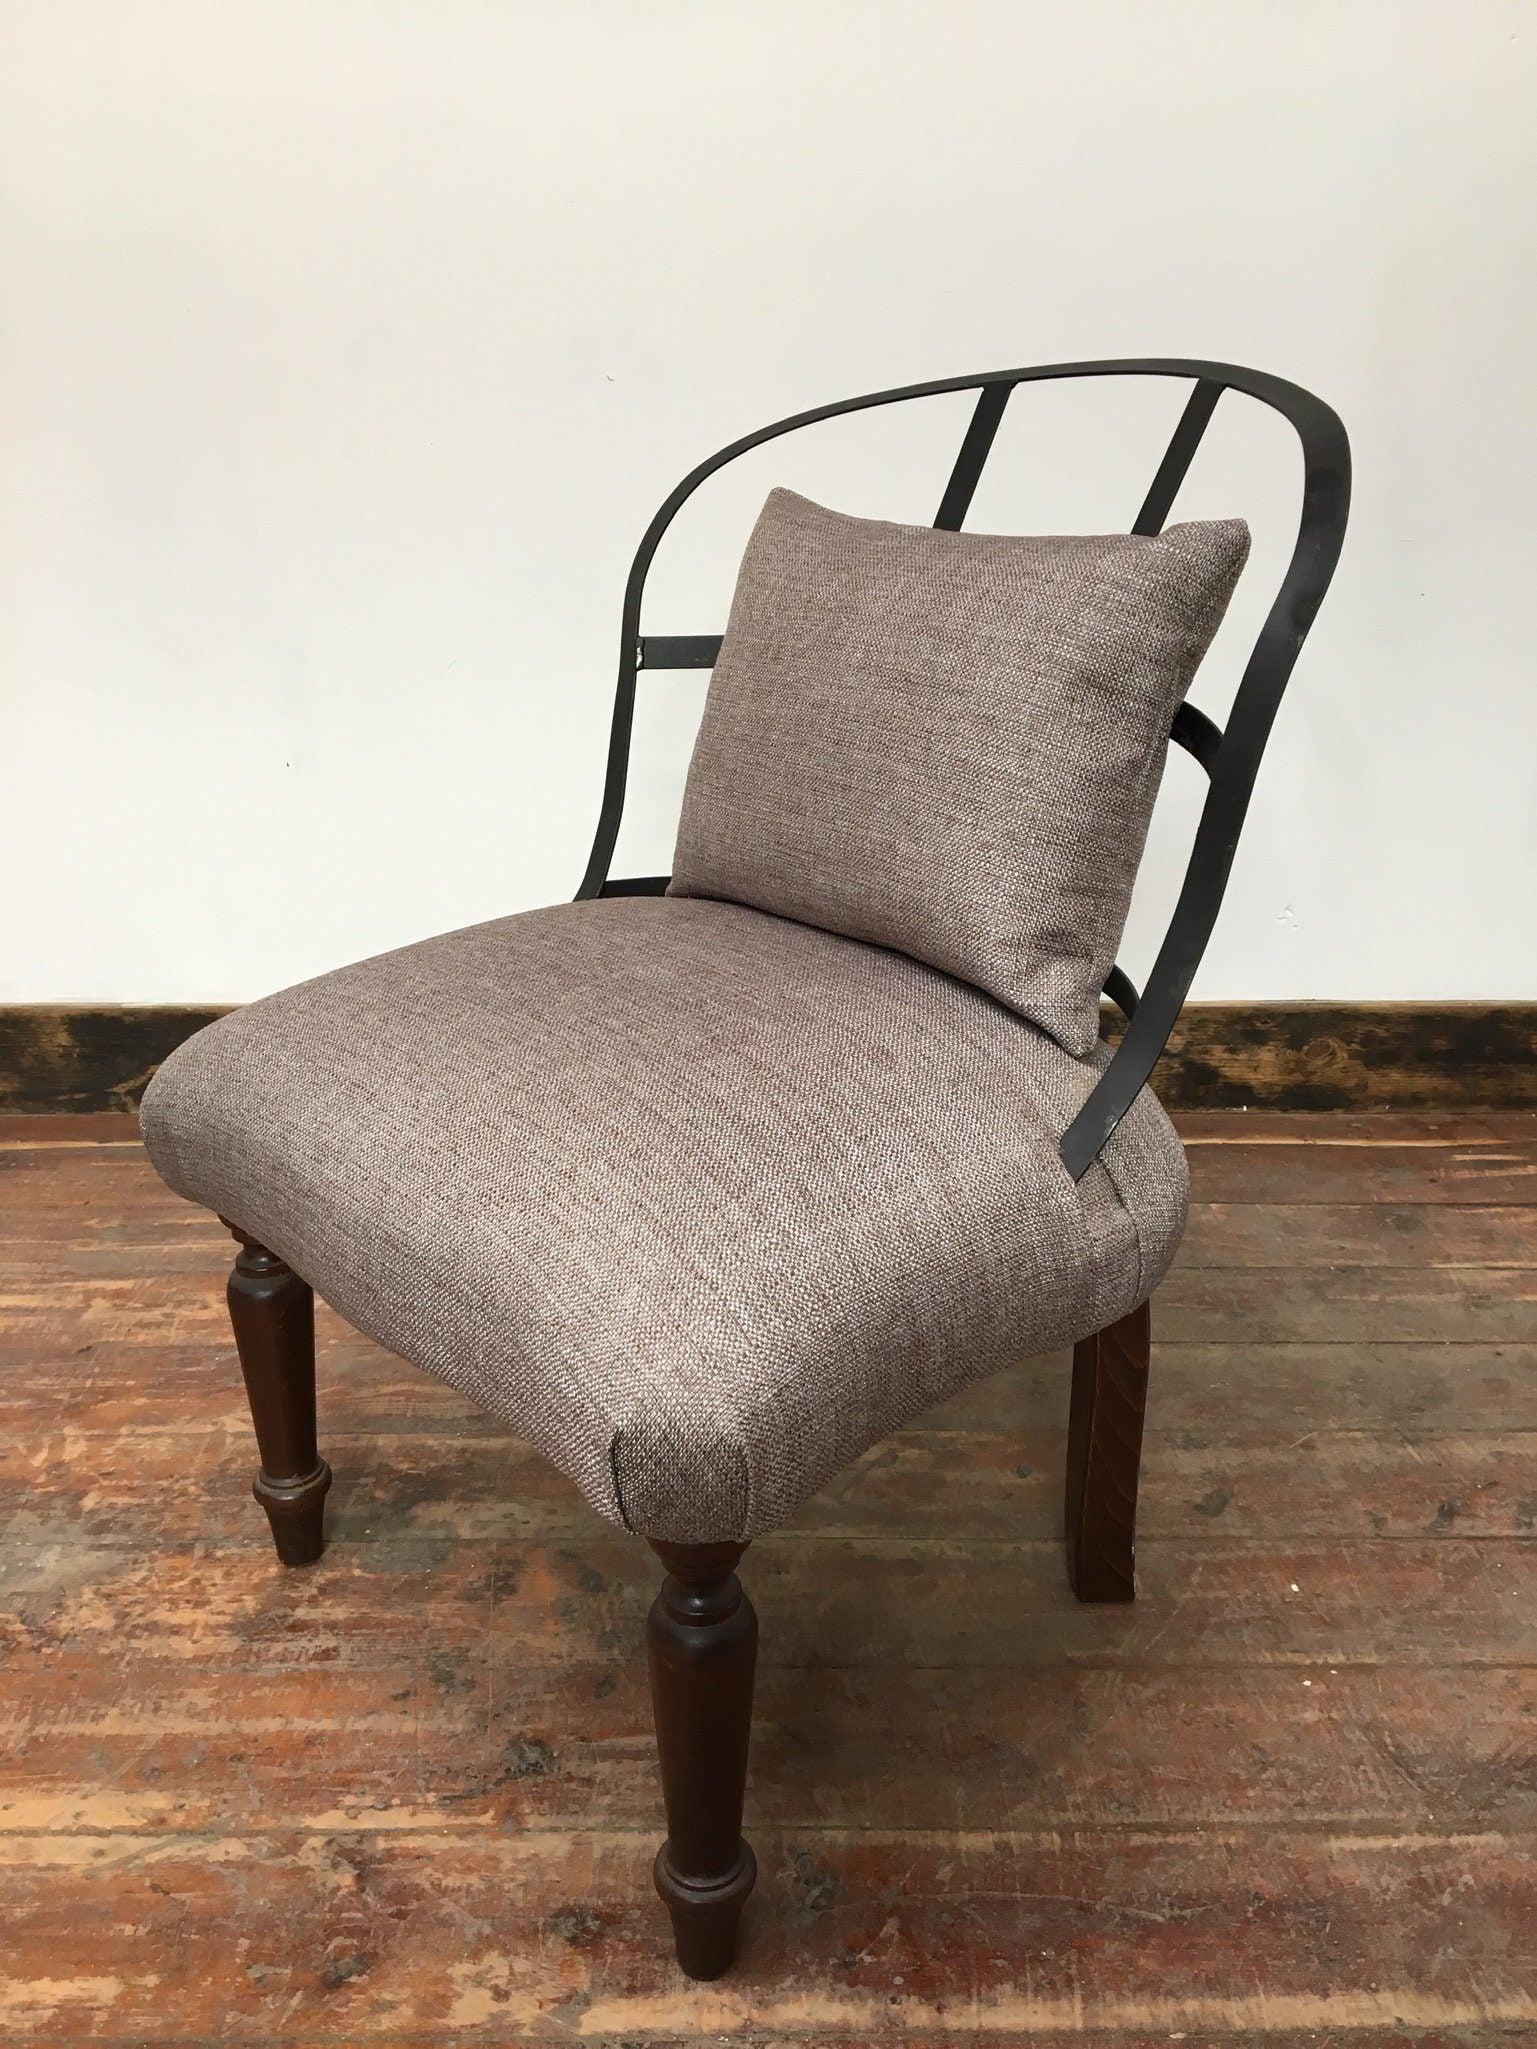 NEW GREY INDUSTRIAL CHAIR - Browsers Emporium